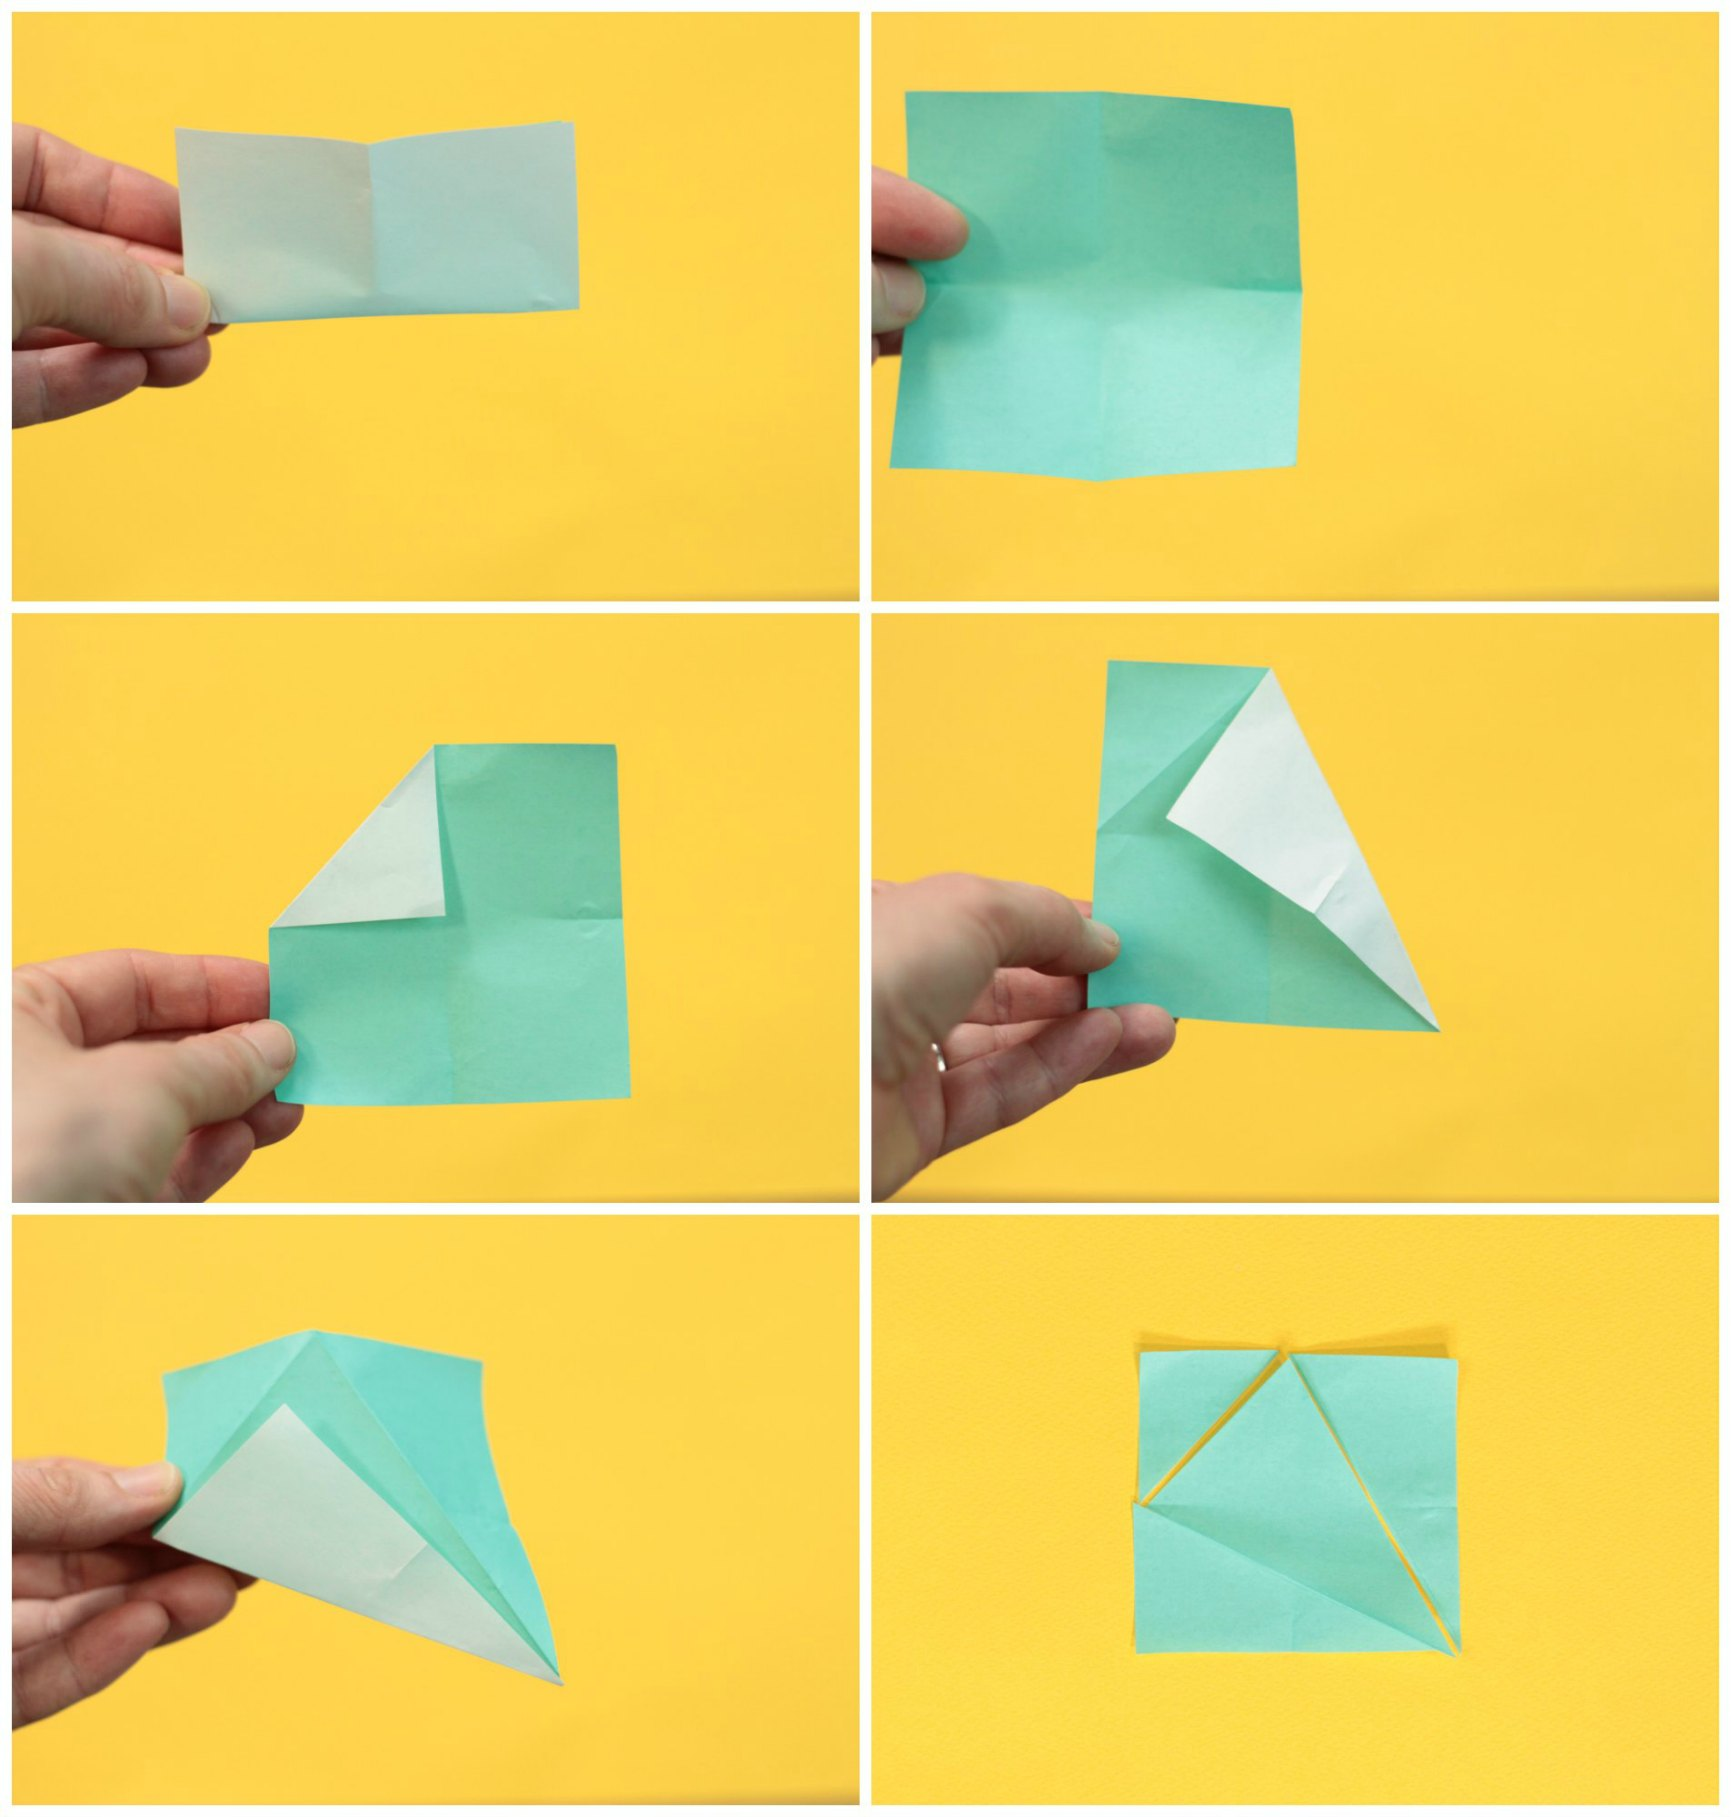 Folding method for making a triangle and square puzzle